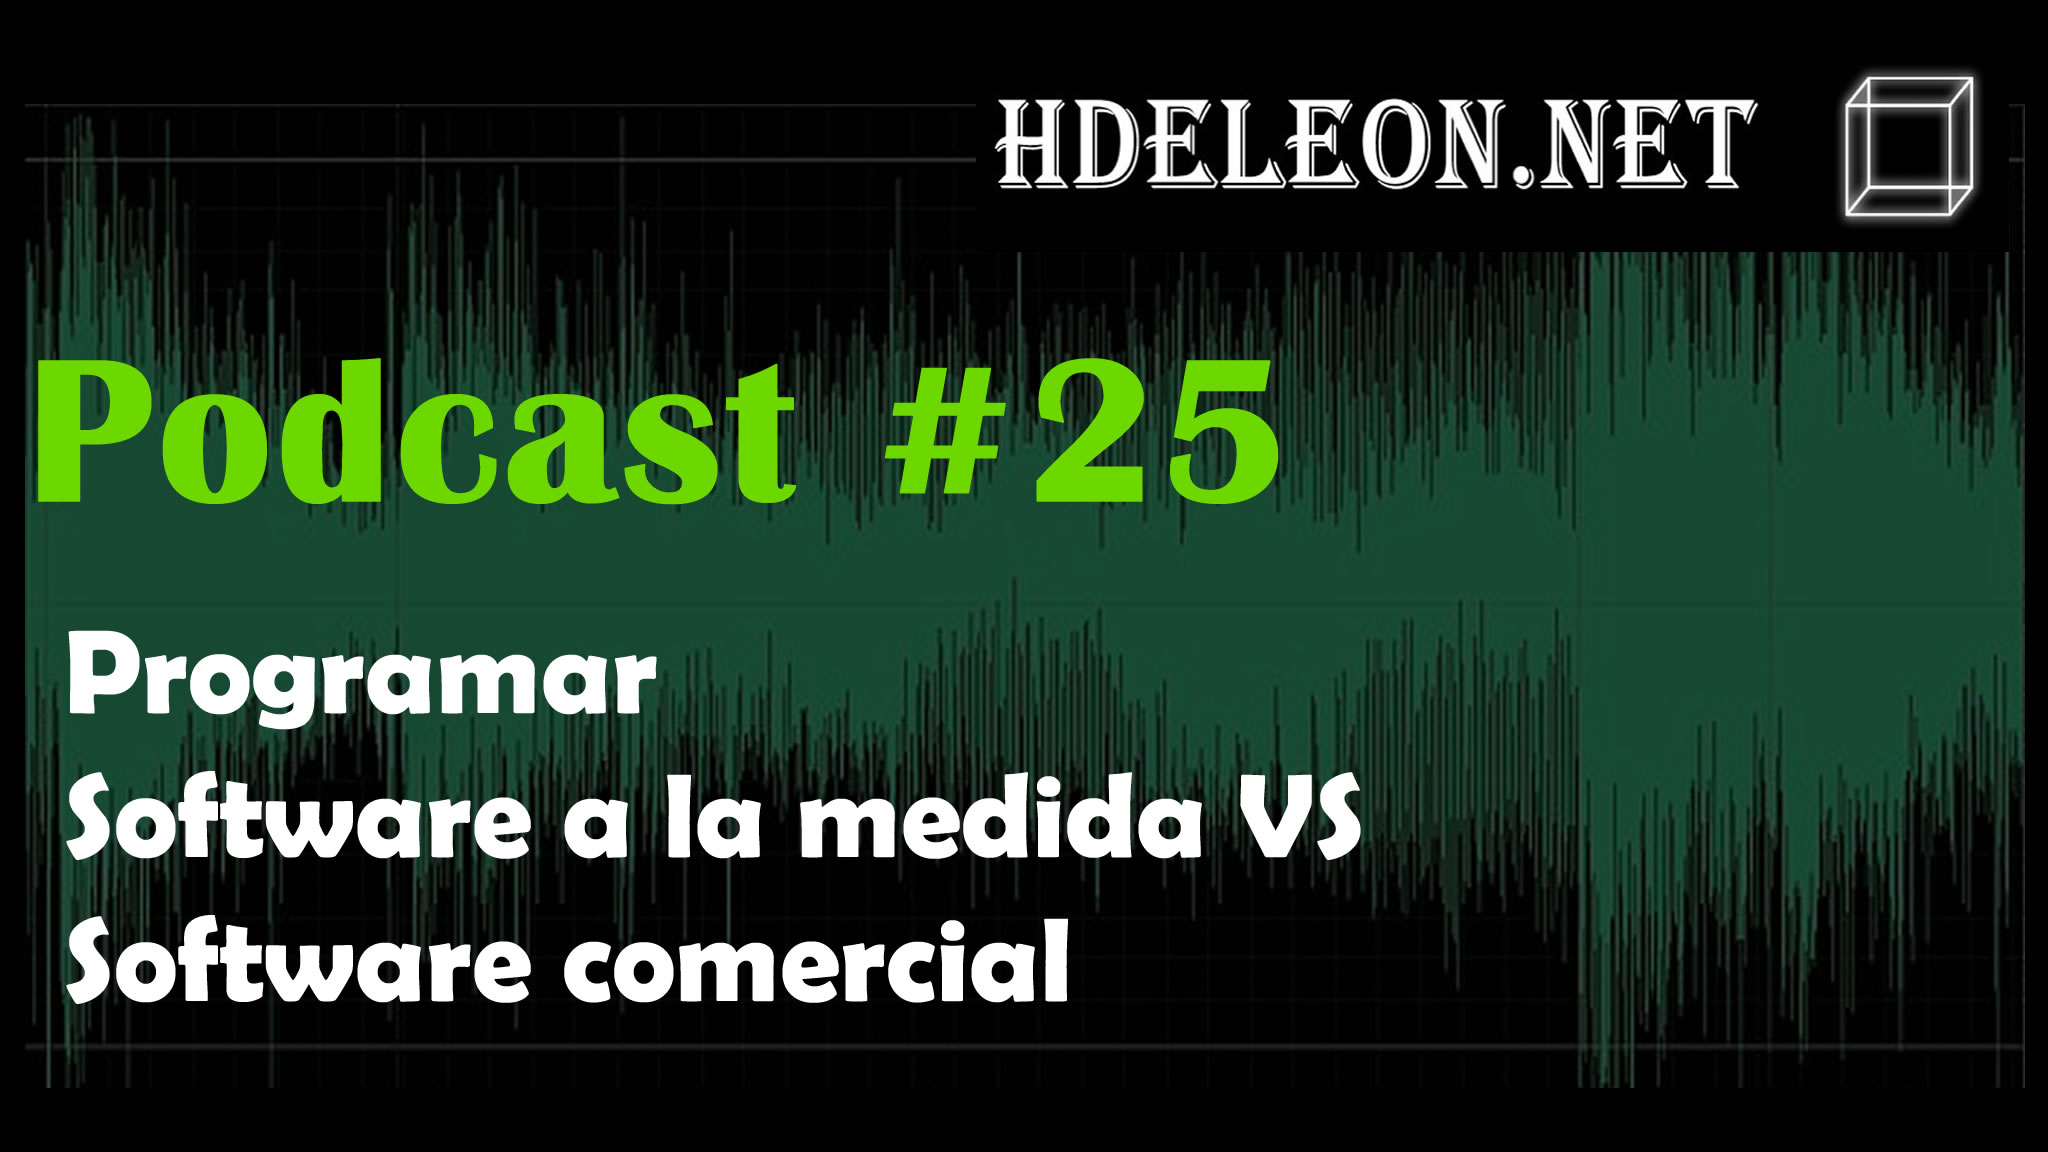 Podcast #25 – Programar software a la medida vs software comercial